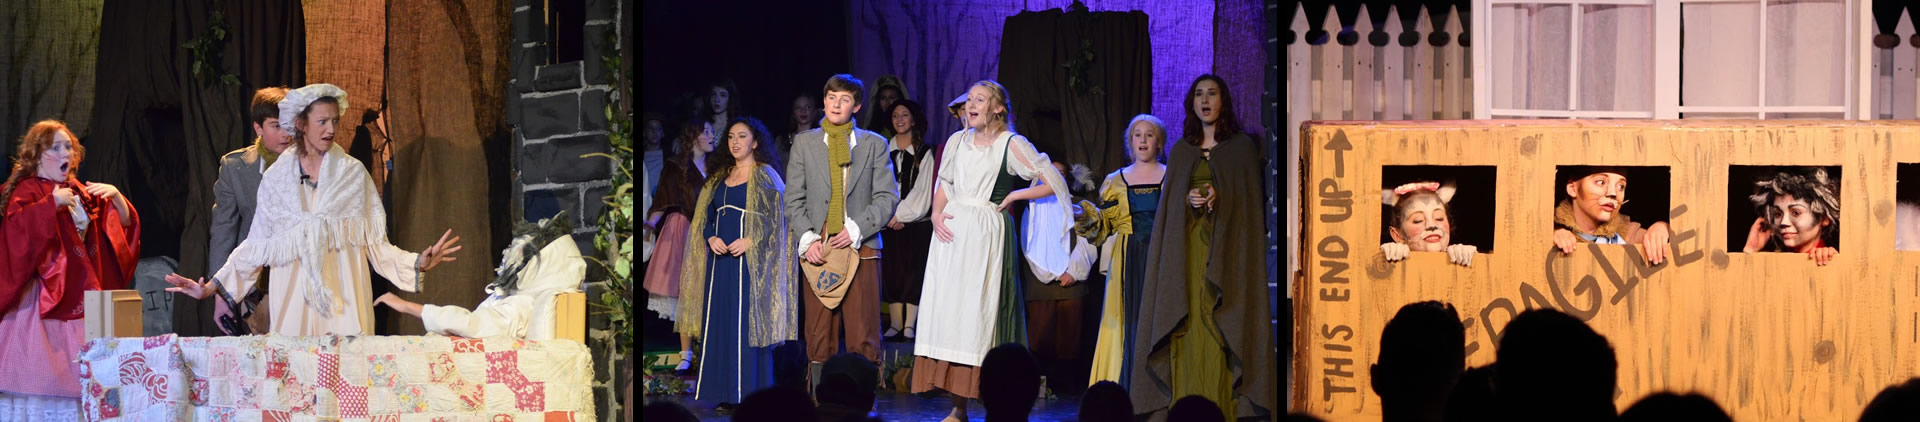 McLaughlin Theatre Company: musicals Loomis theatrical workshops